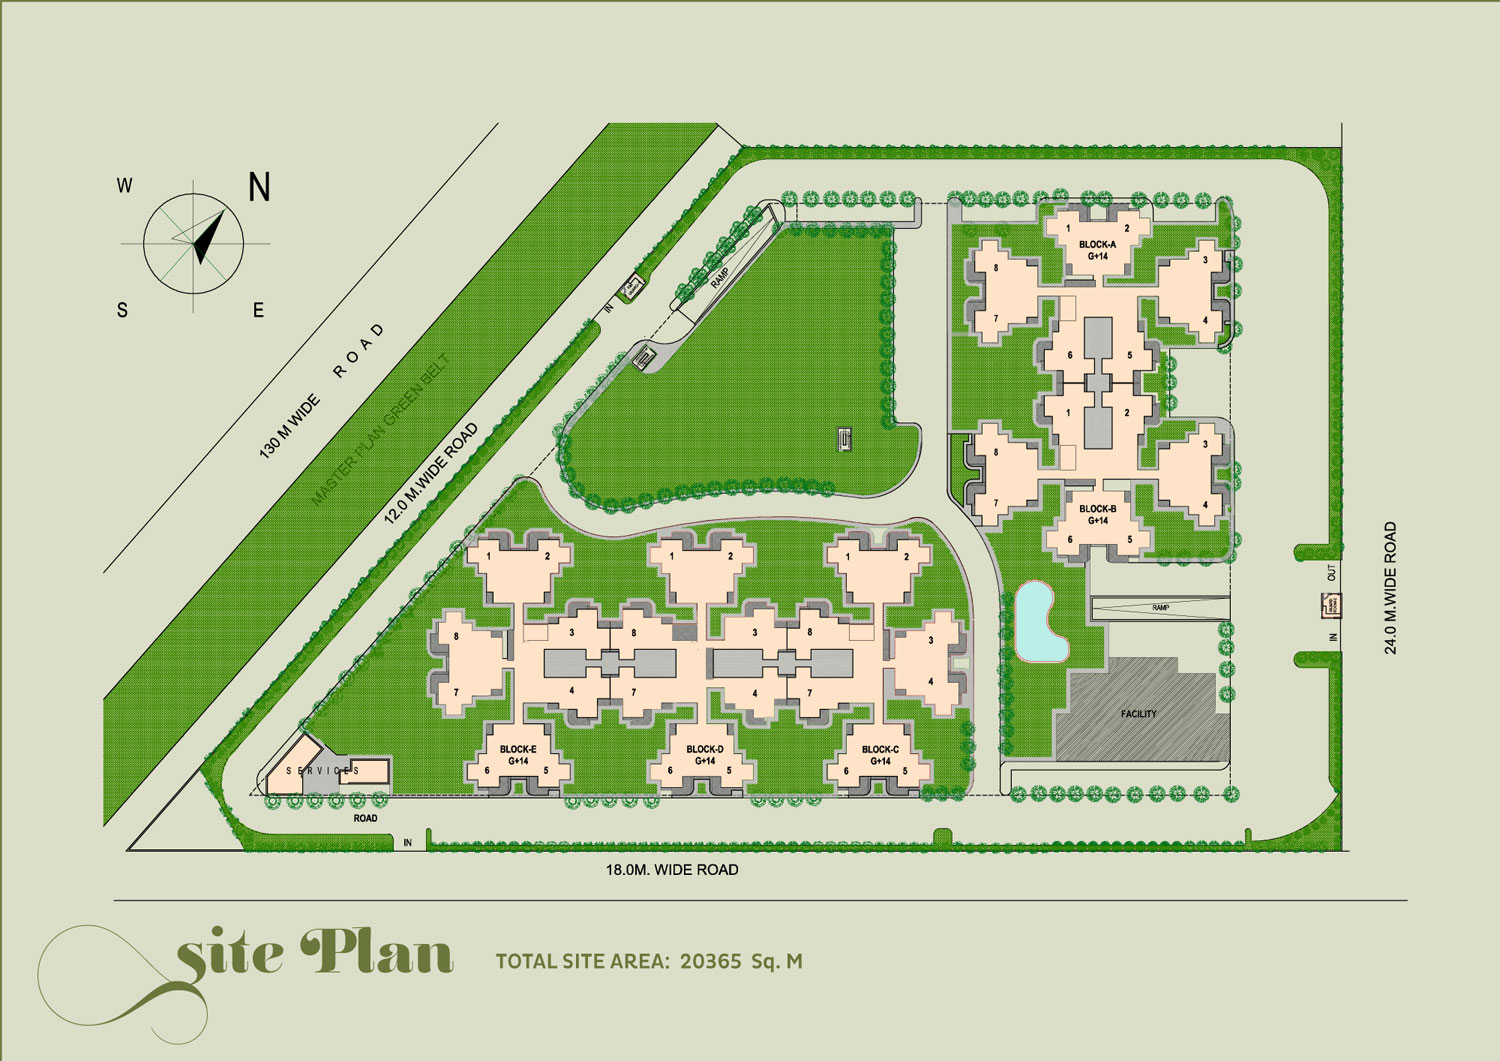 stellar mi citihomes site plan